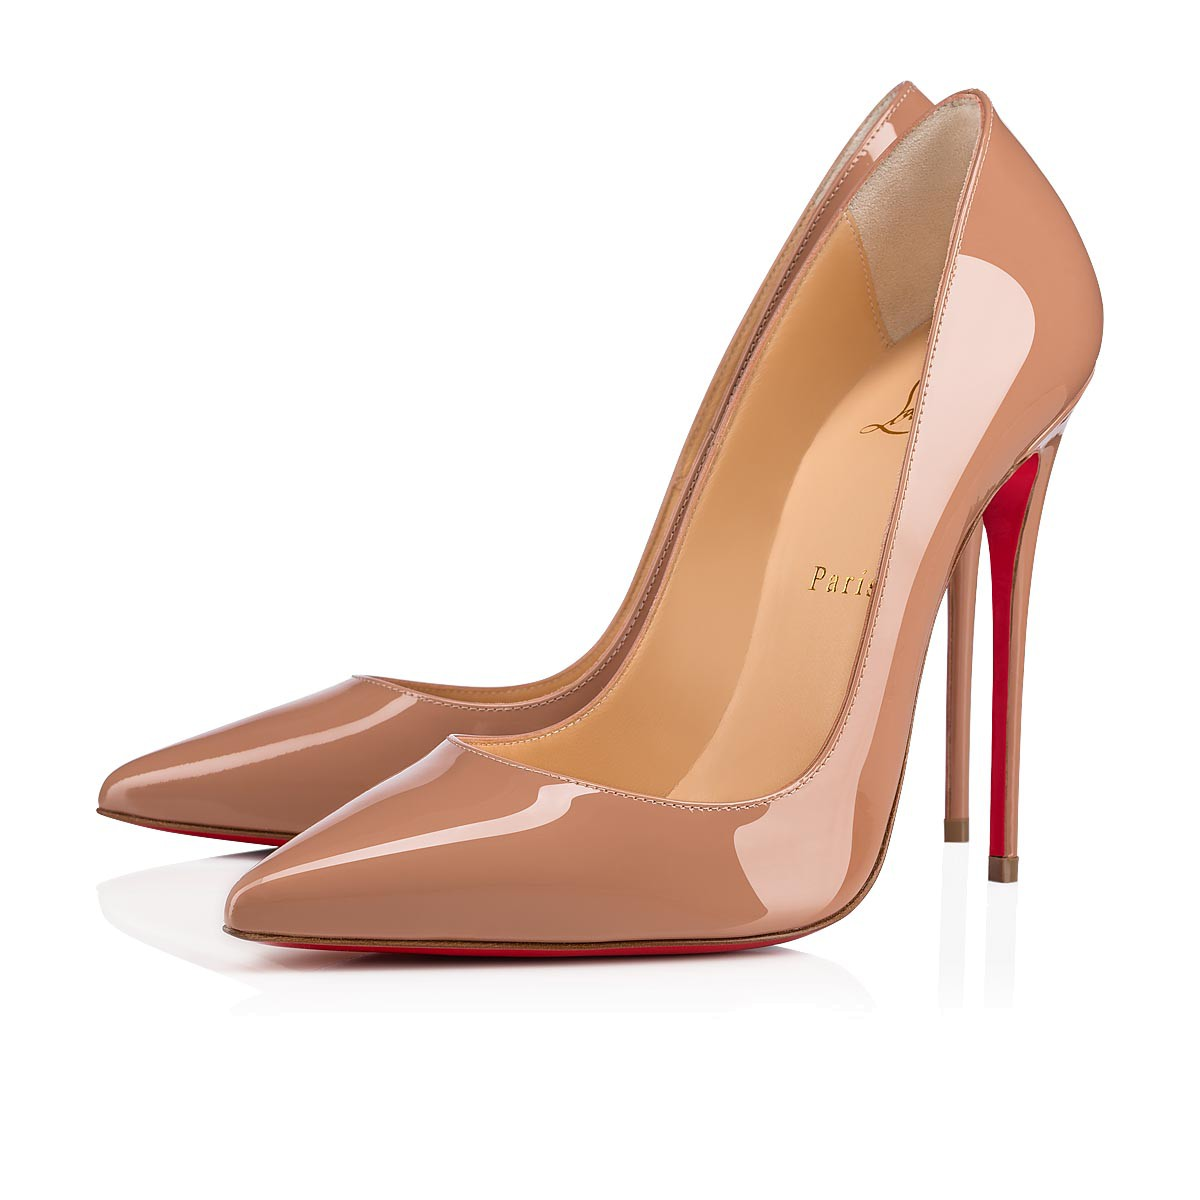 4e0ee91957e So Kate 120 Nude Patent Leather - Women Shoes - Christian Louboutin